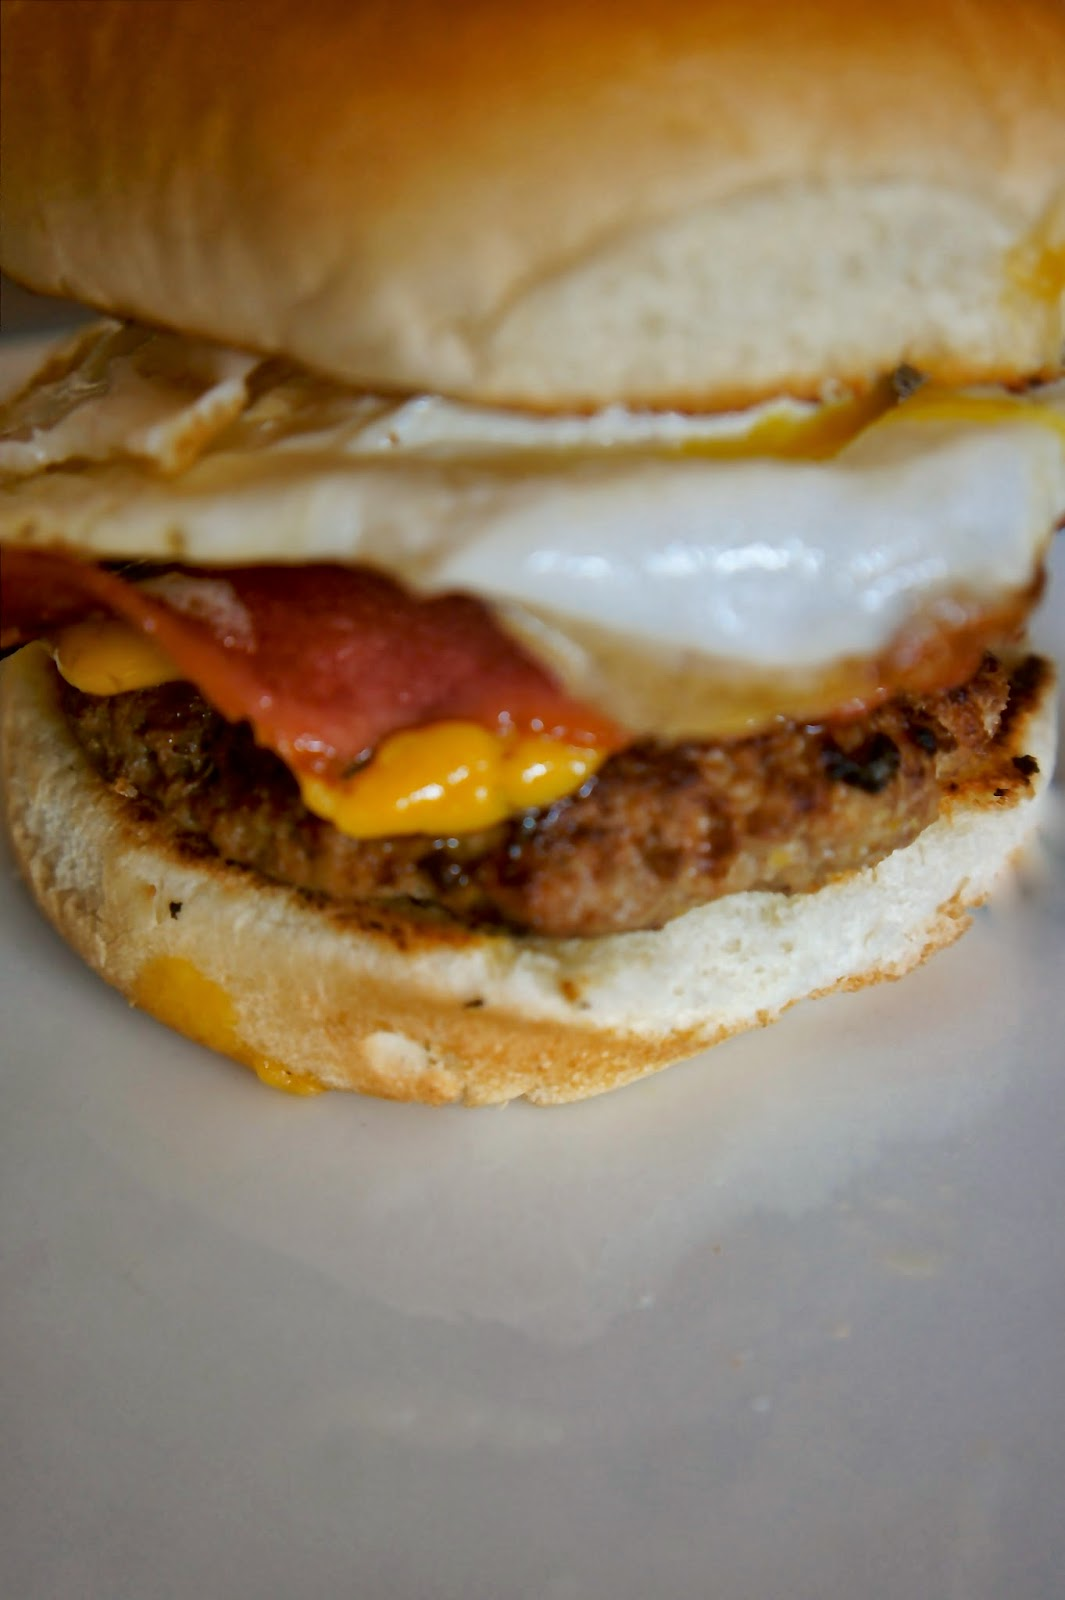 Savory Sweet and Satisfying: Bacon and Egg Burger